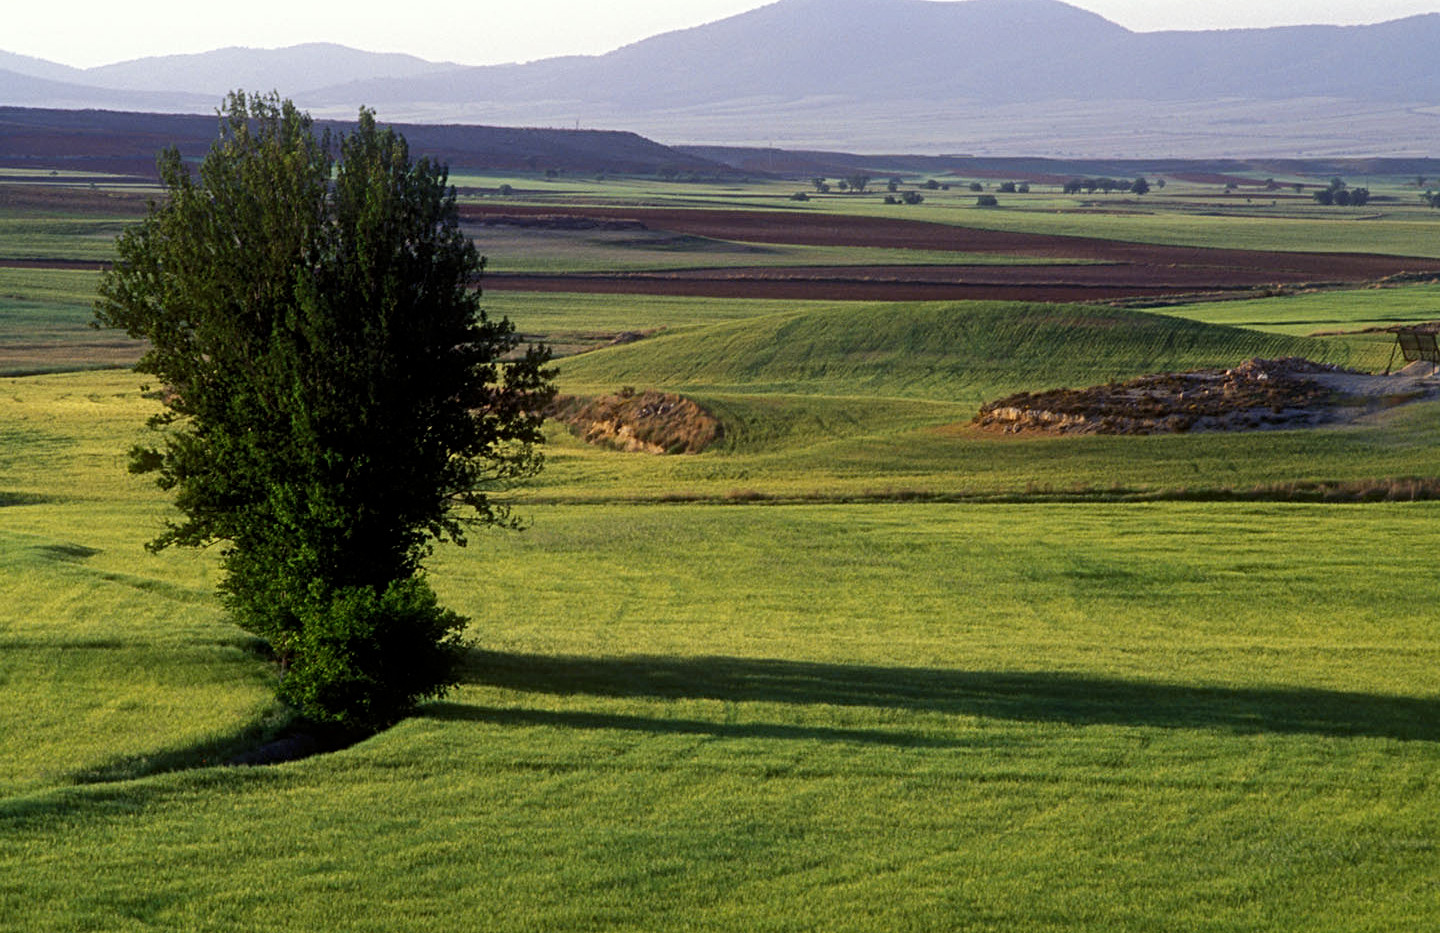 Campos cereal / Agricultural fields